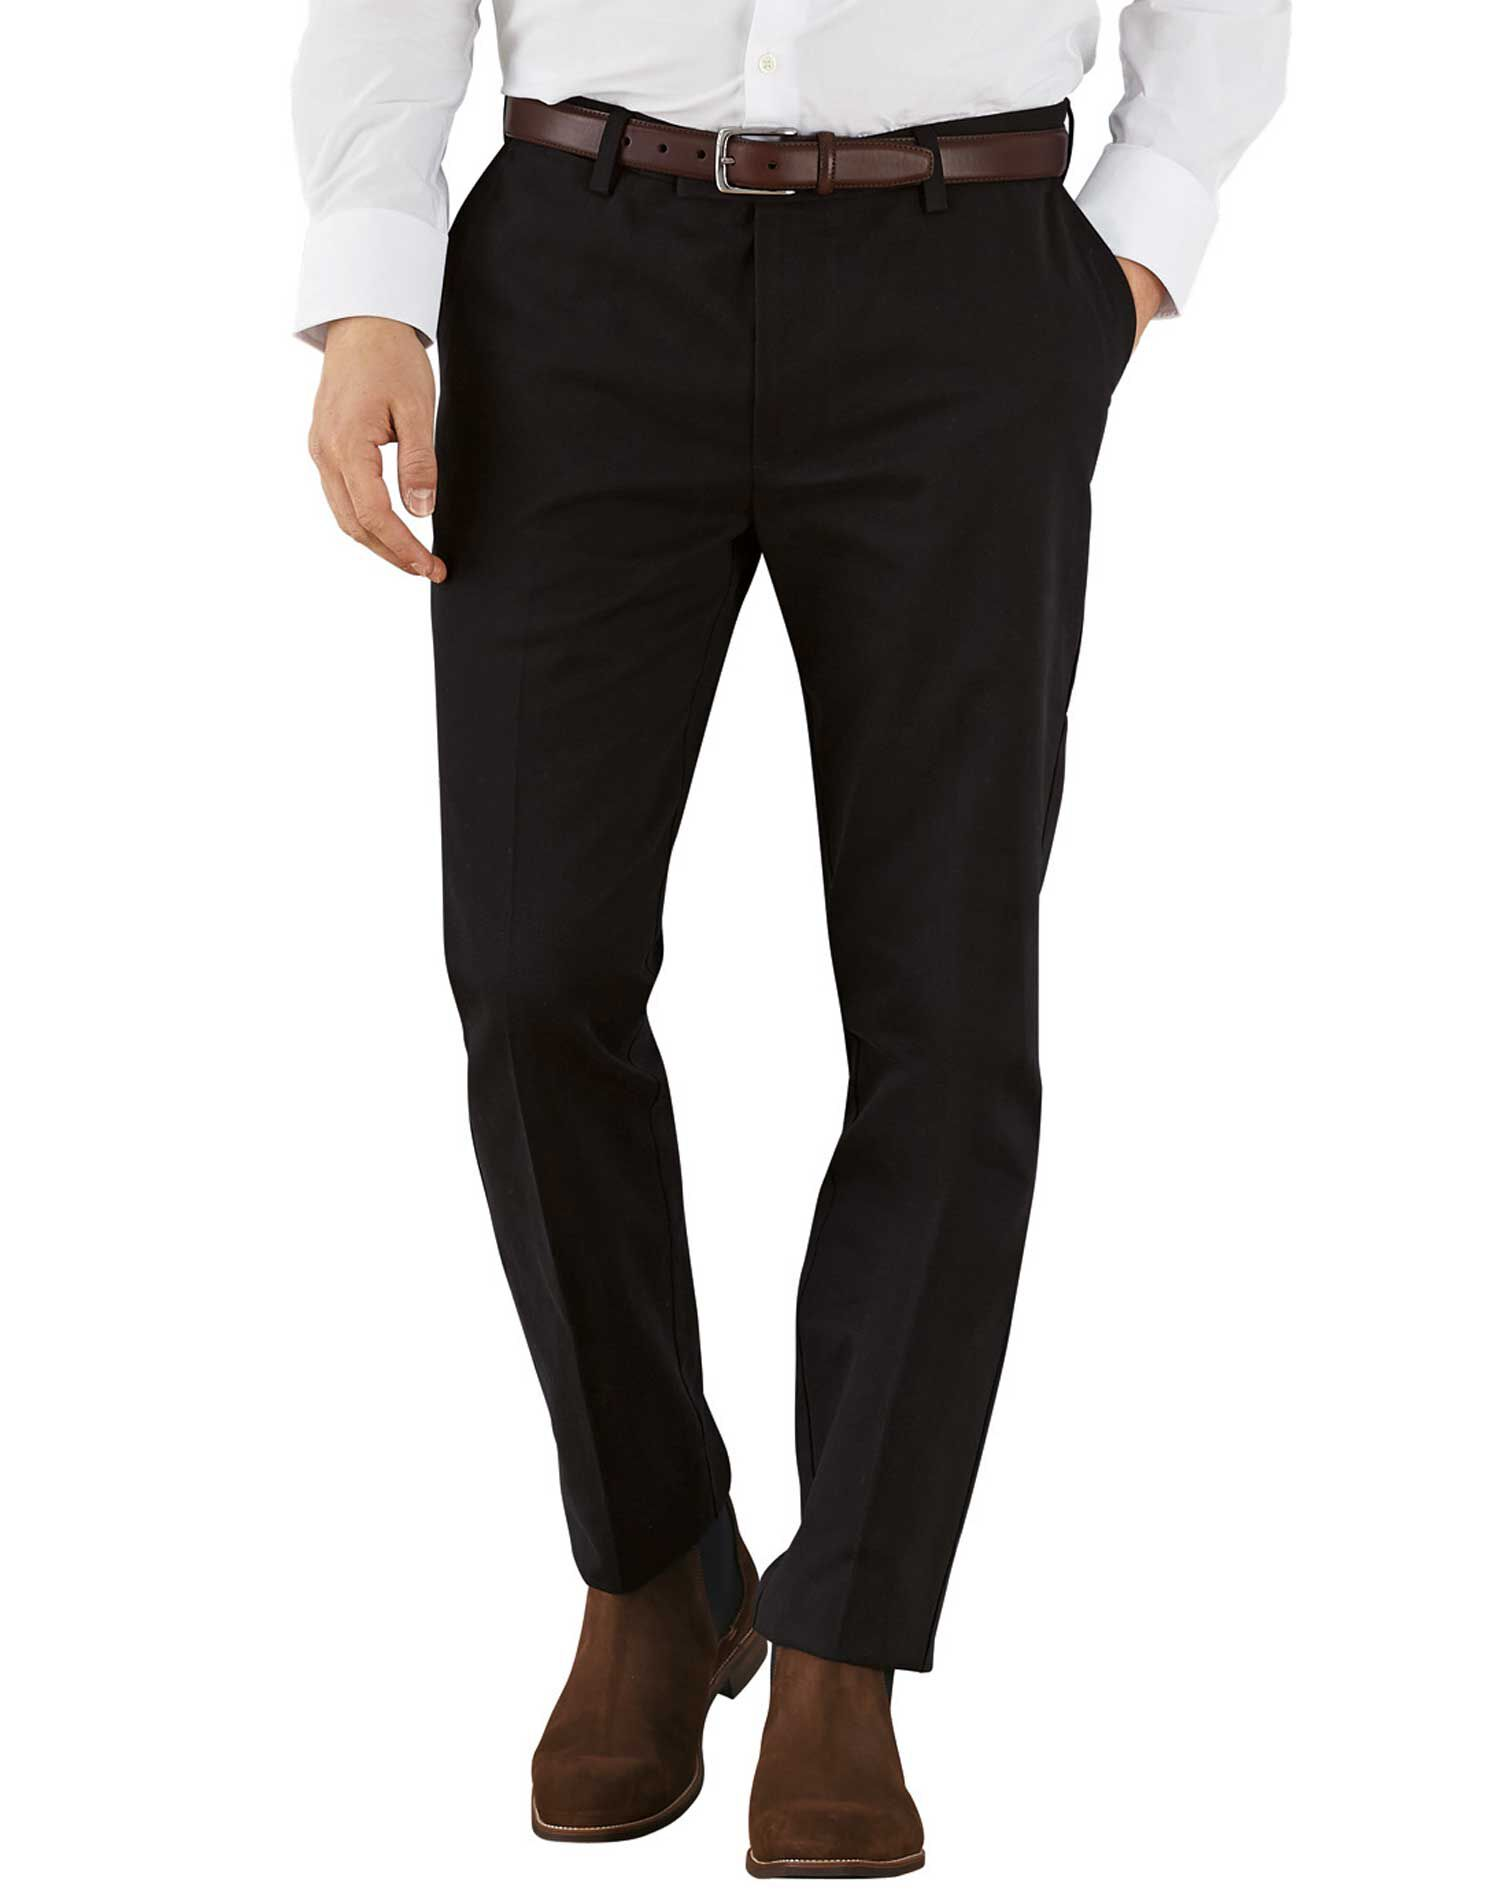 Black Extra Slim Fit Flat Front Non-Iron Cotton Chino Trousers Size W32 L38 by Charles Tyrwhitt